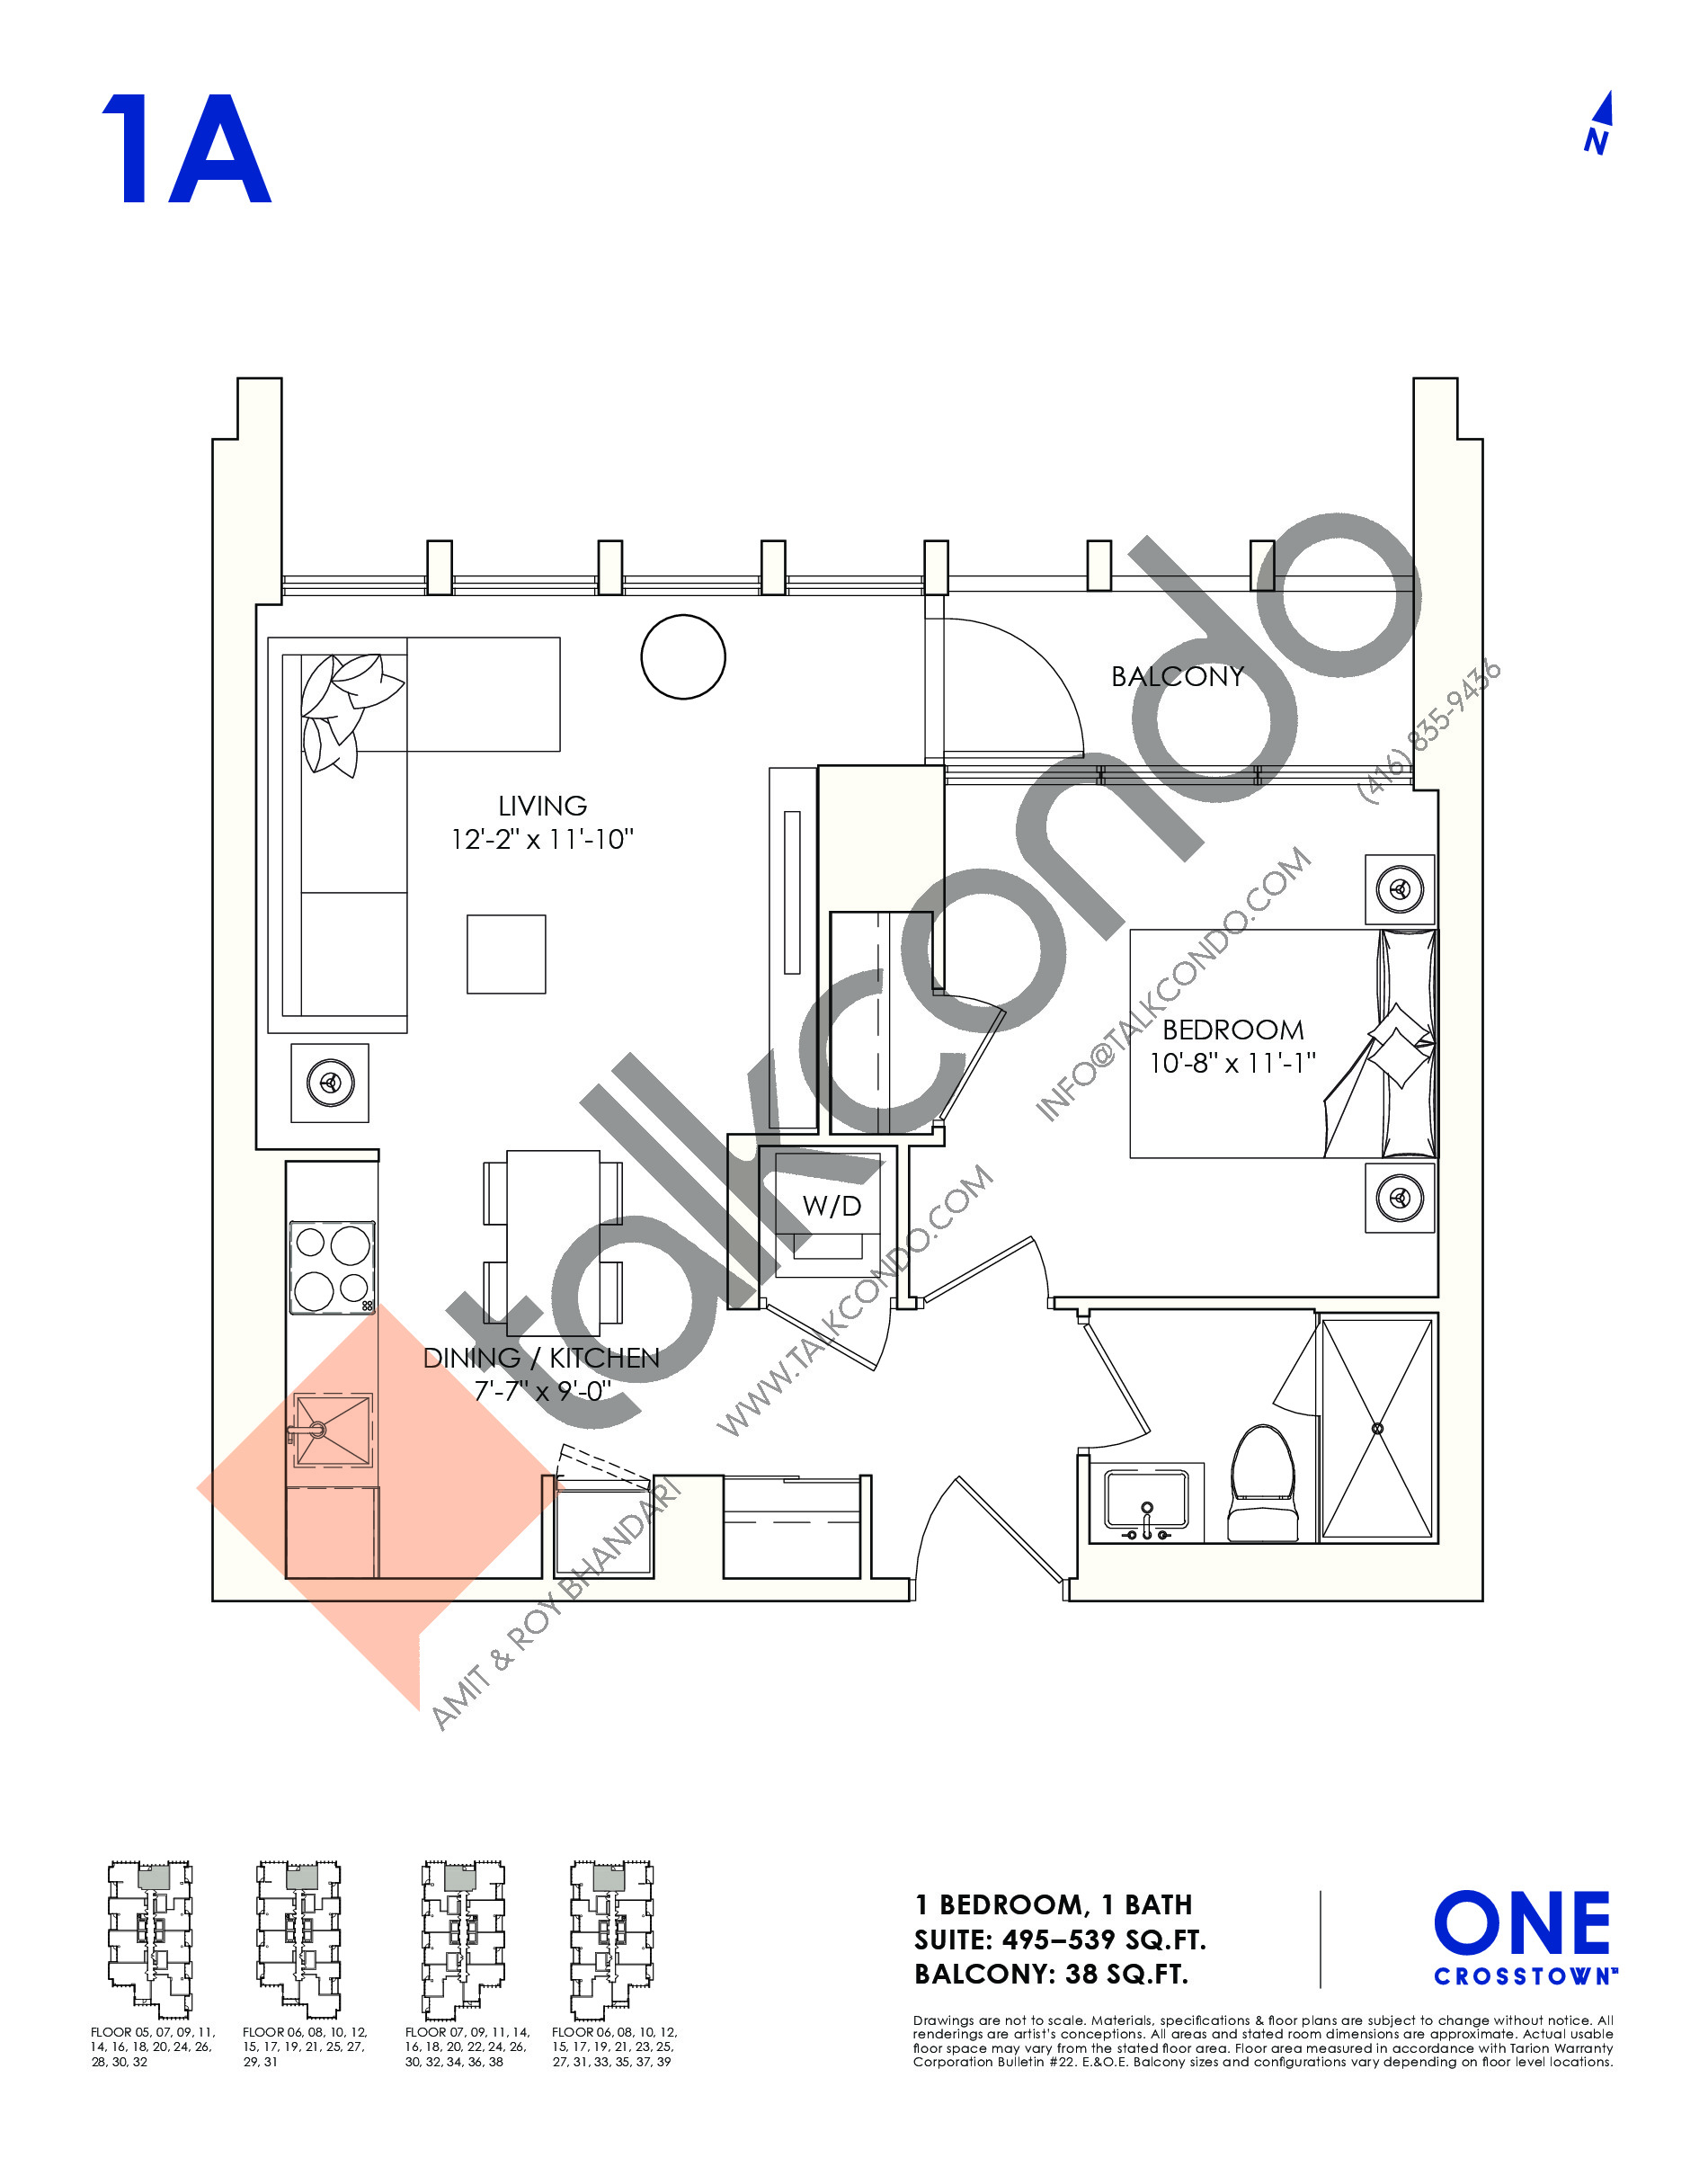 1A Floor Plan at One Crosstown Condos - 539 sq.ft